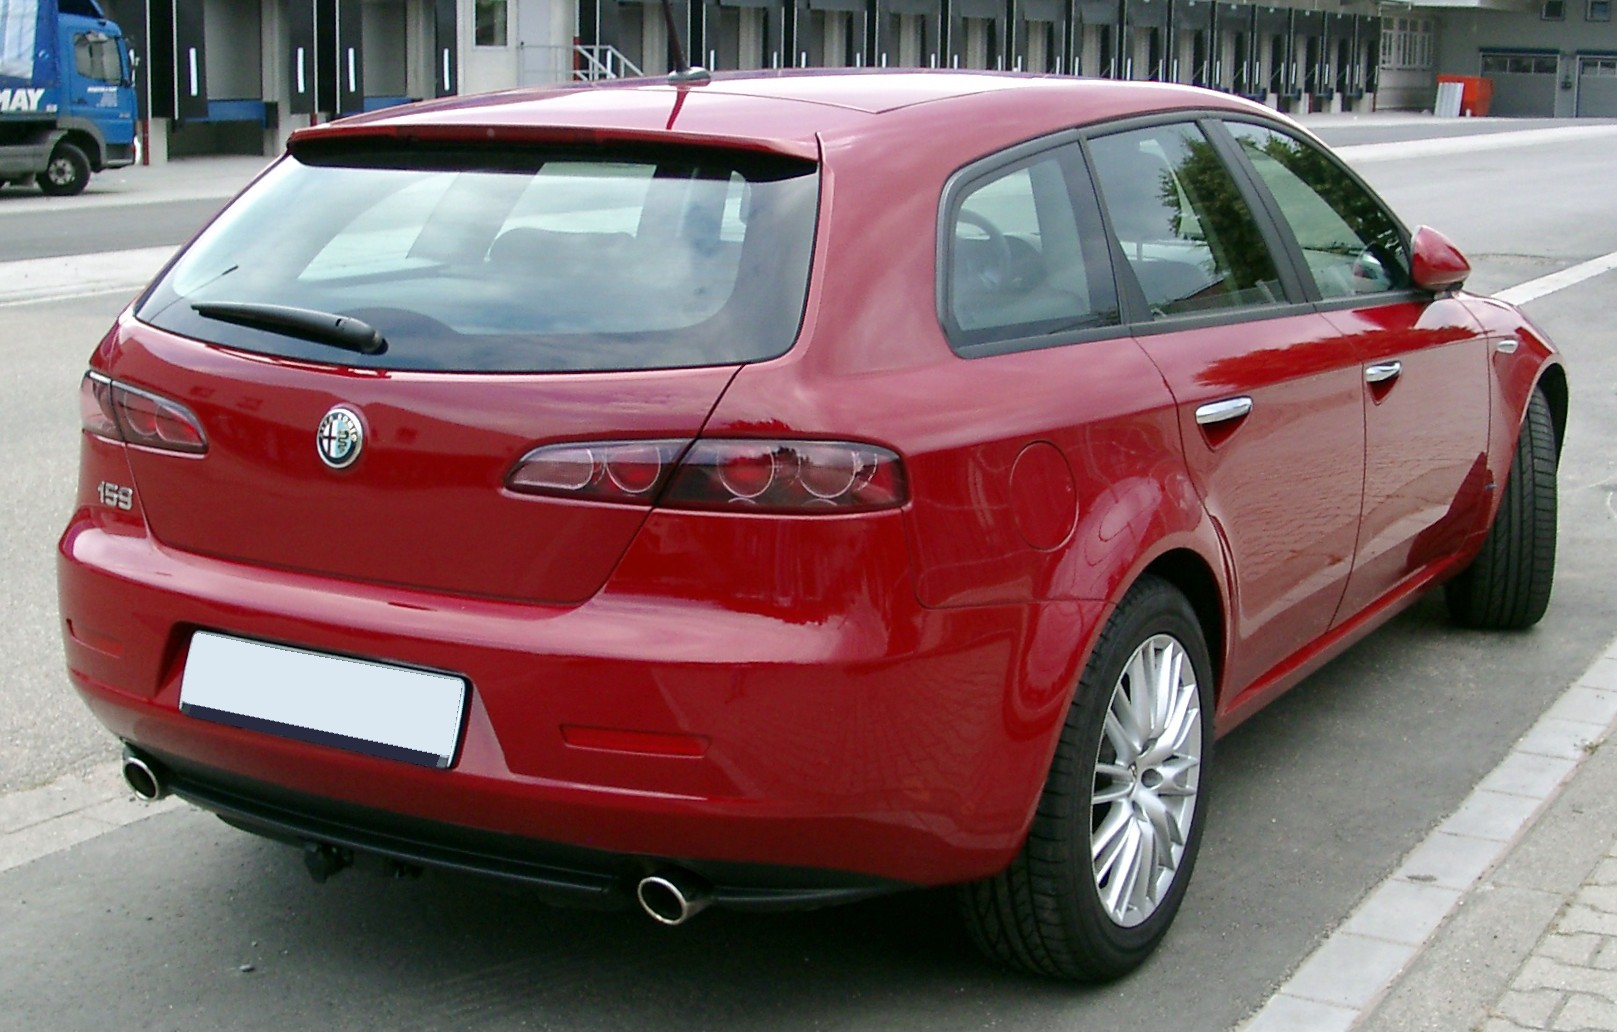 file alfa romeo 159 sw rear wikipedia. Black Bedroom Furniture Sets. Home Design Ideas